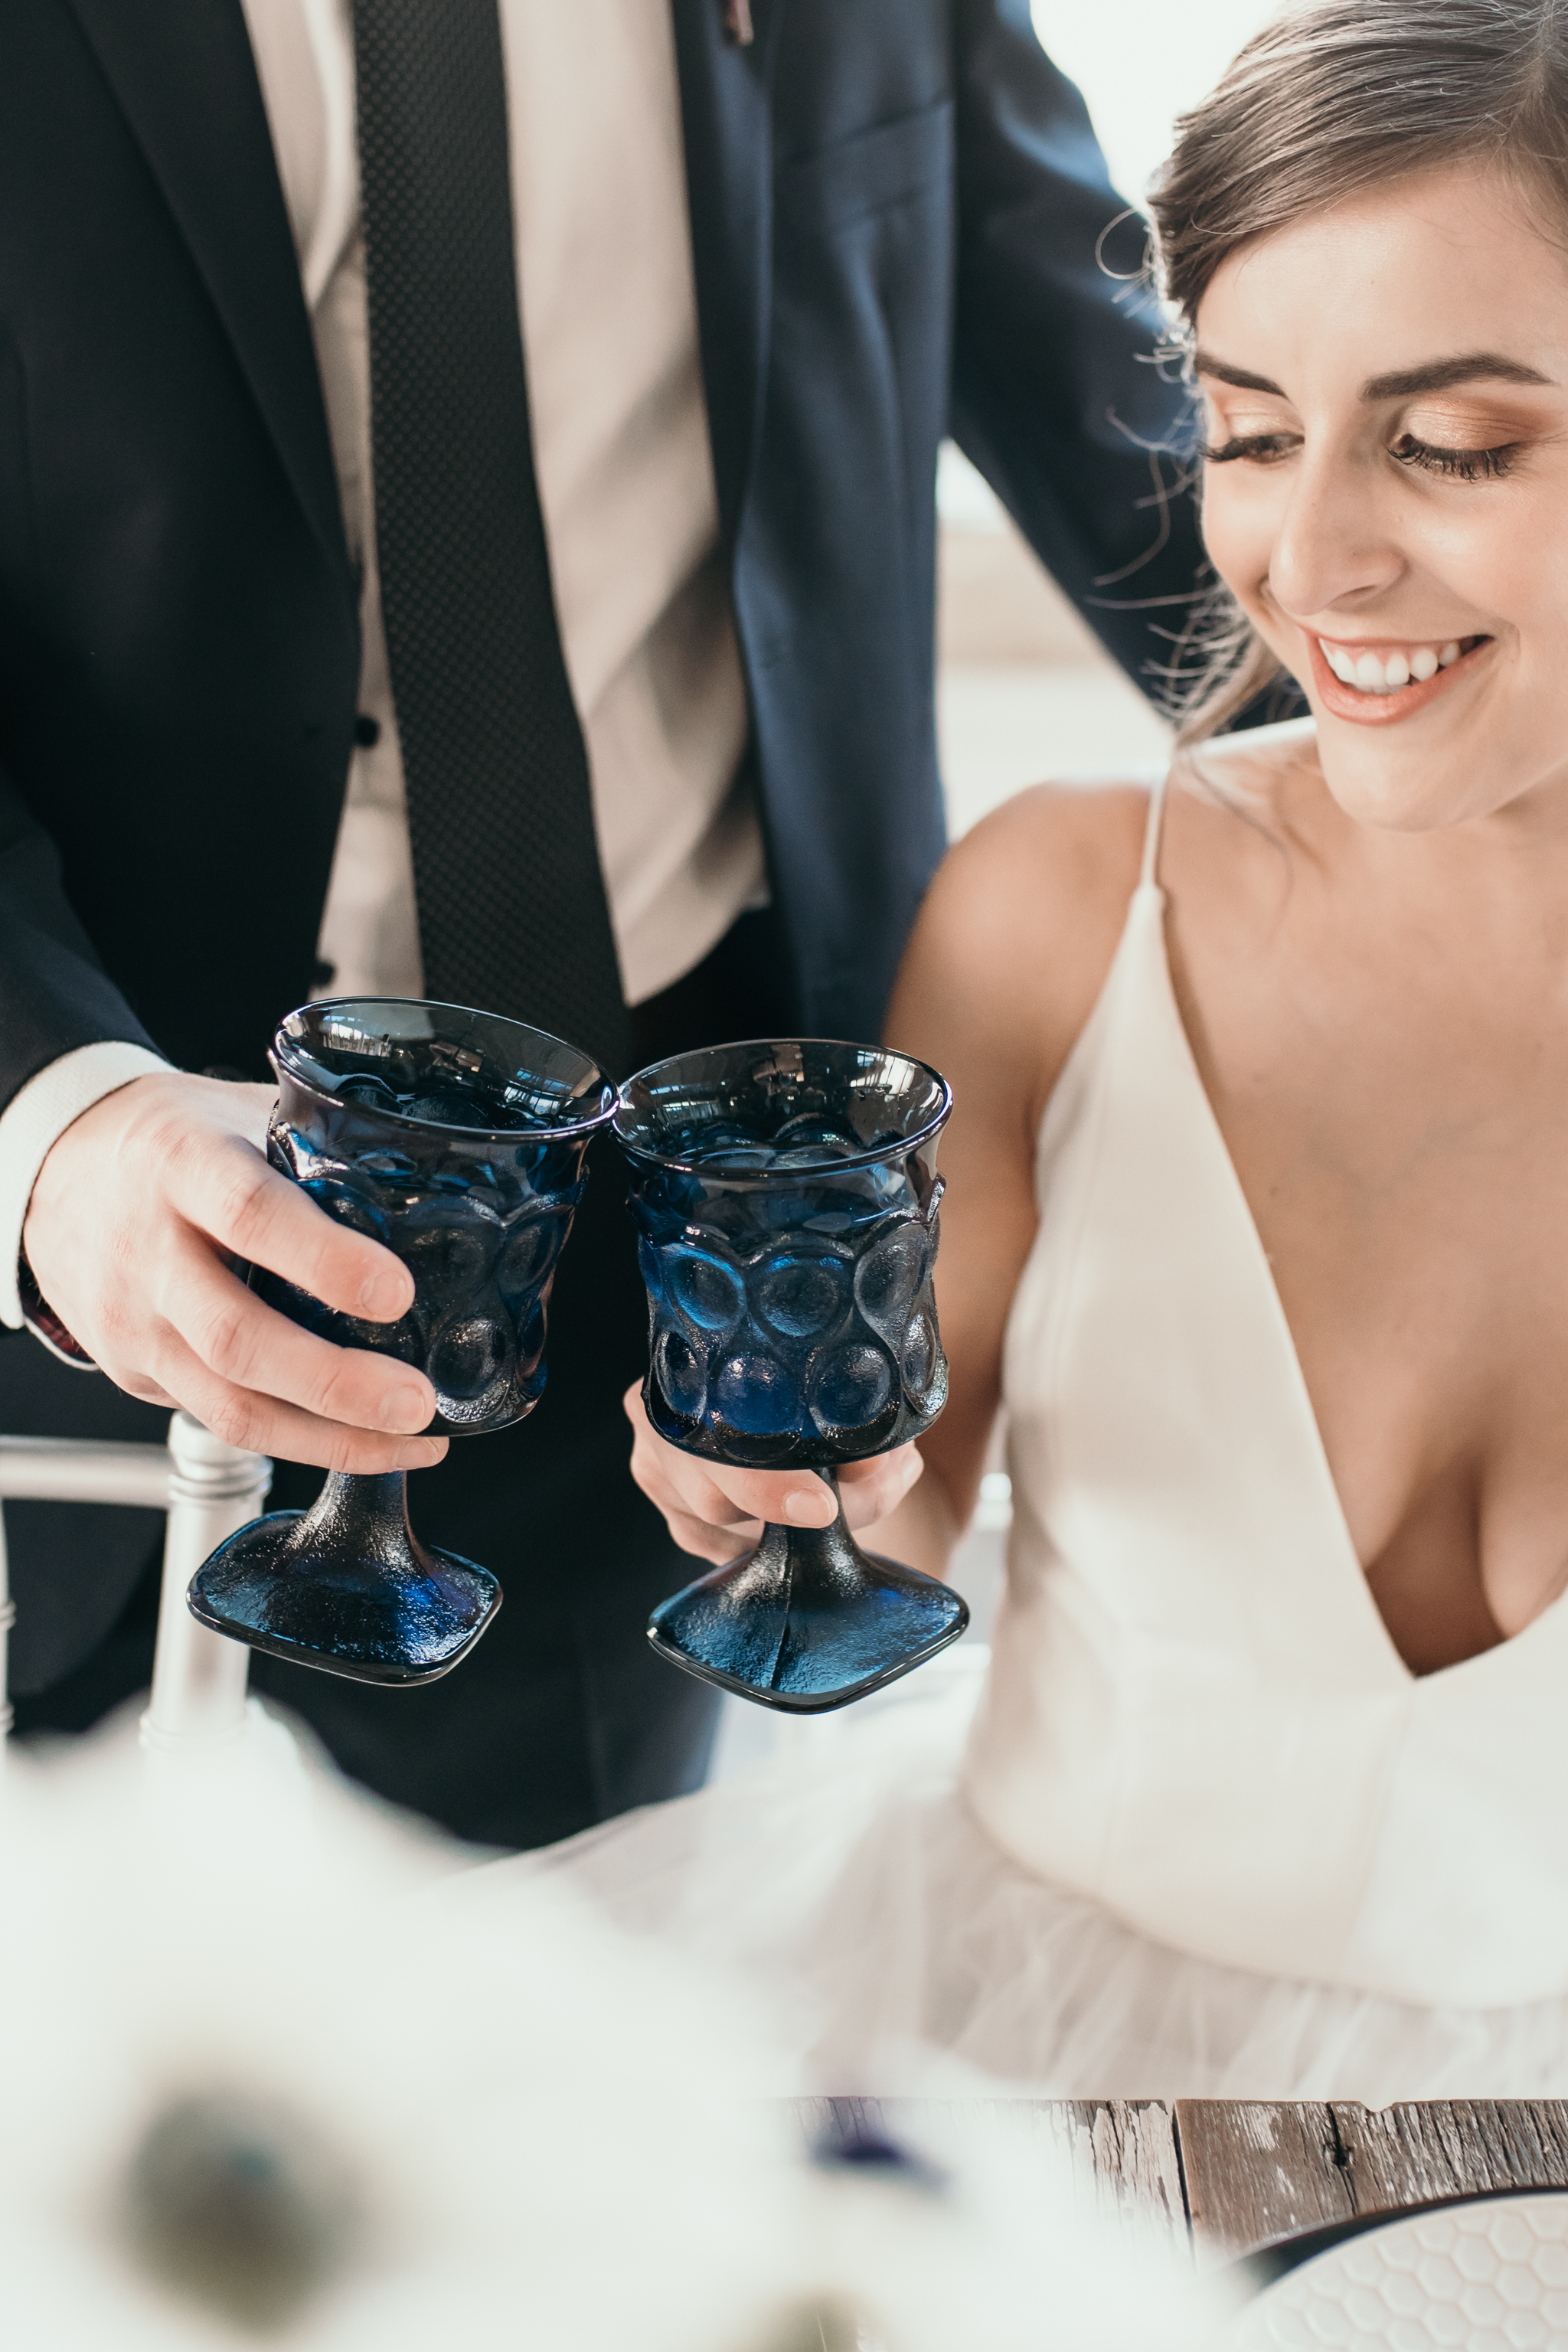 Jewel Tone Wedding Styled Shoot_Silver Knot_Montana Wedding Planner_Montana Wedding Photographer_Montana Wedding Videography_Honeybee Weddings-0726.jpg